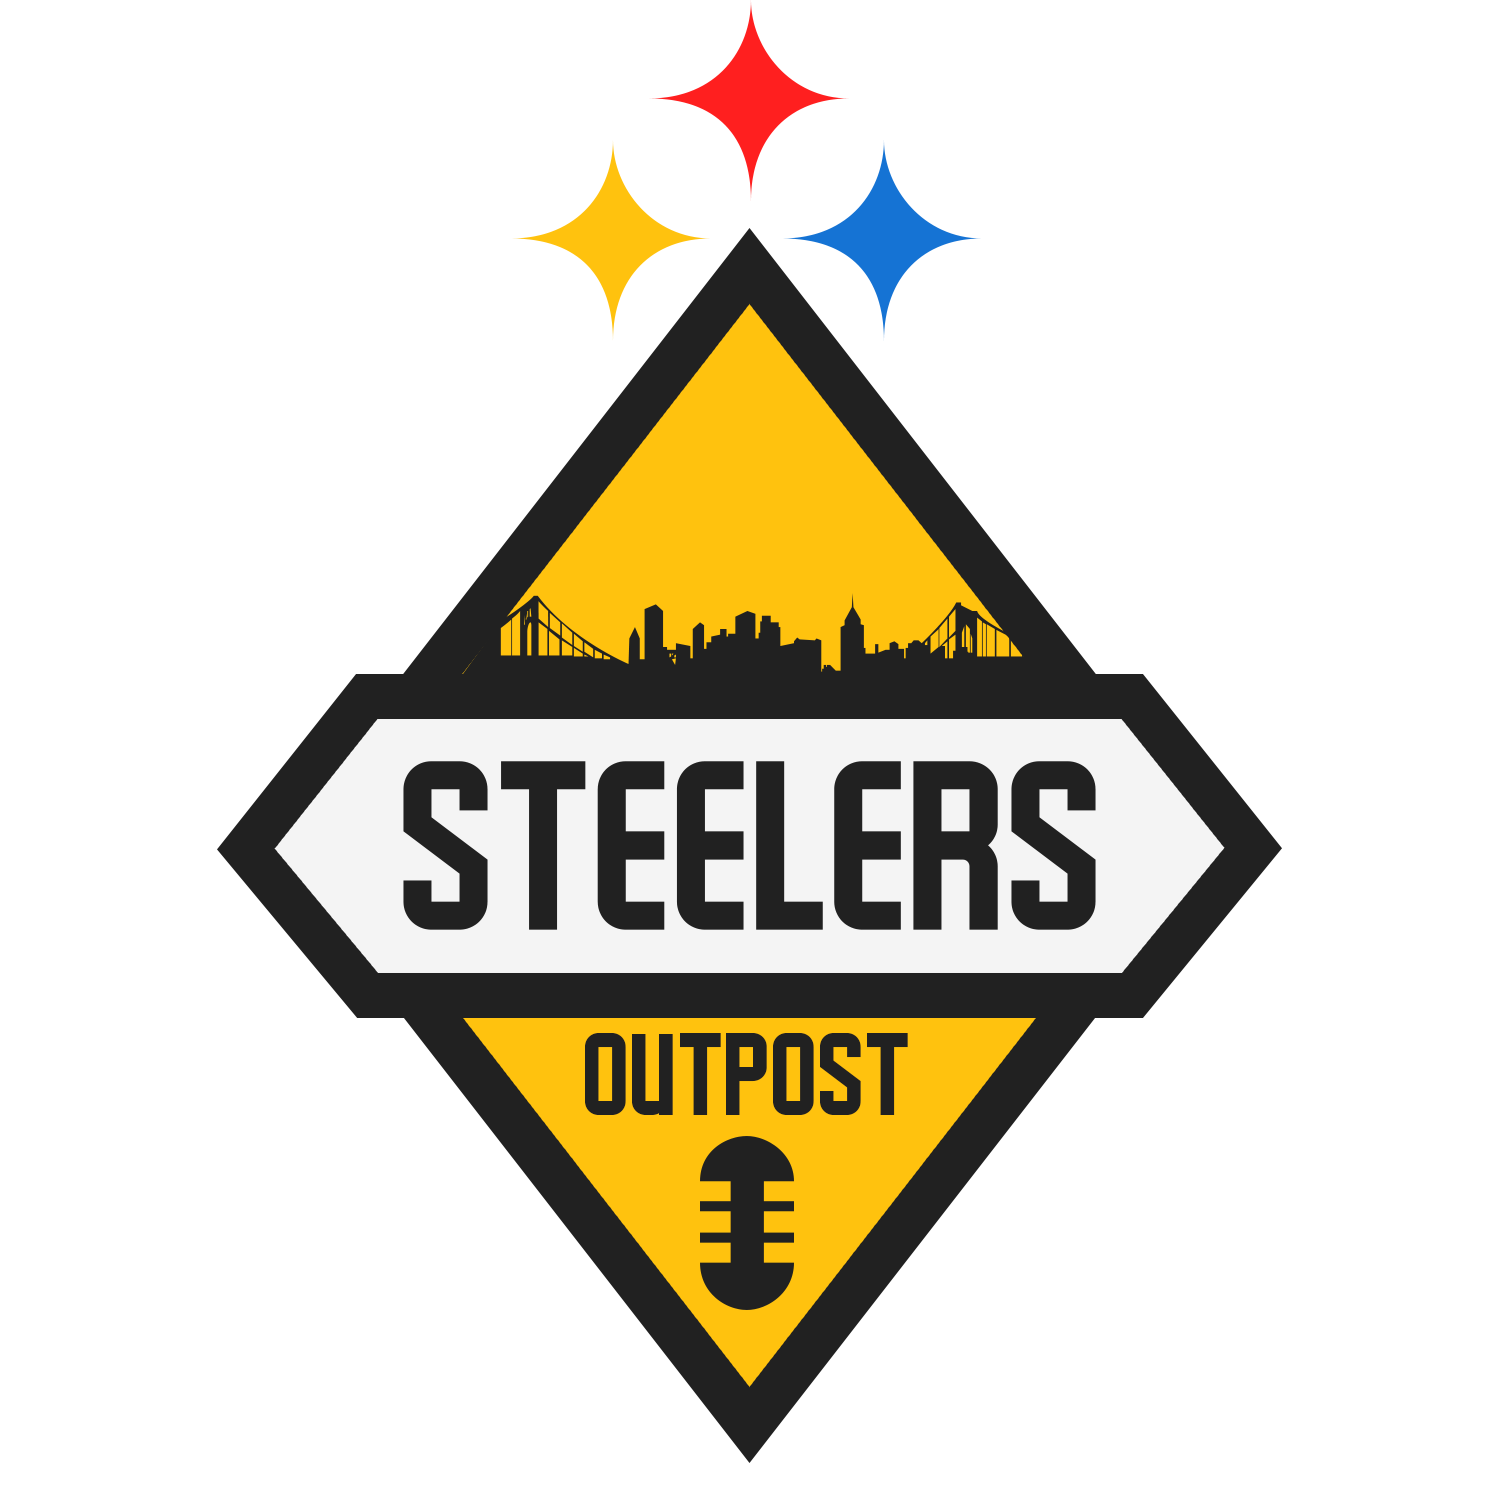 Ep. 100 Steelers Outpost Century Mega Episode! show art